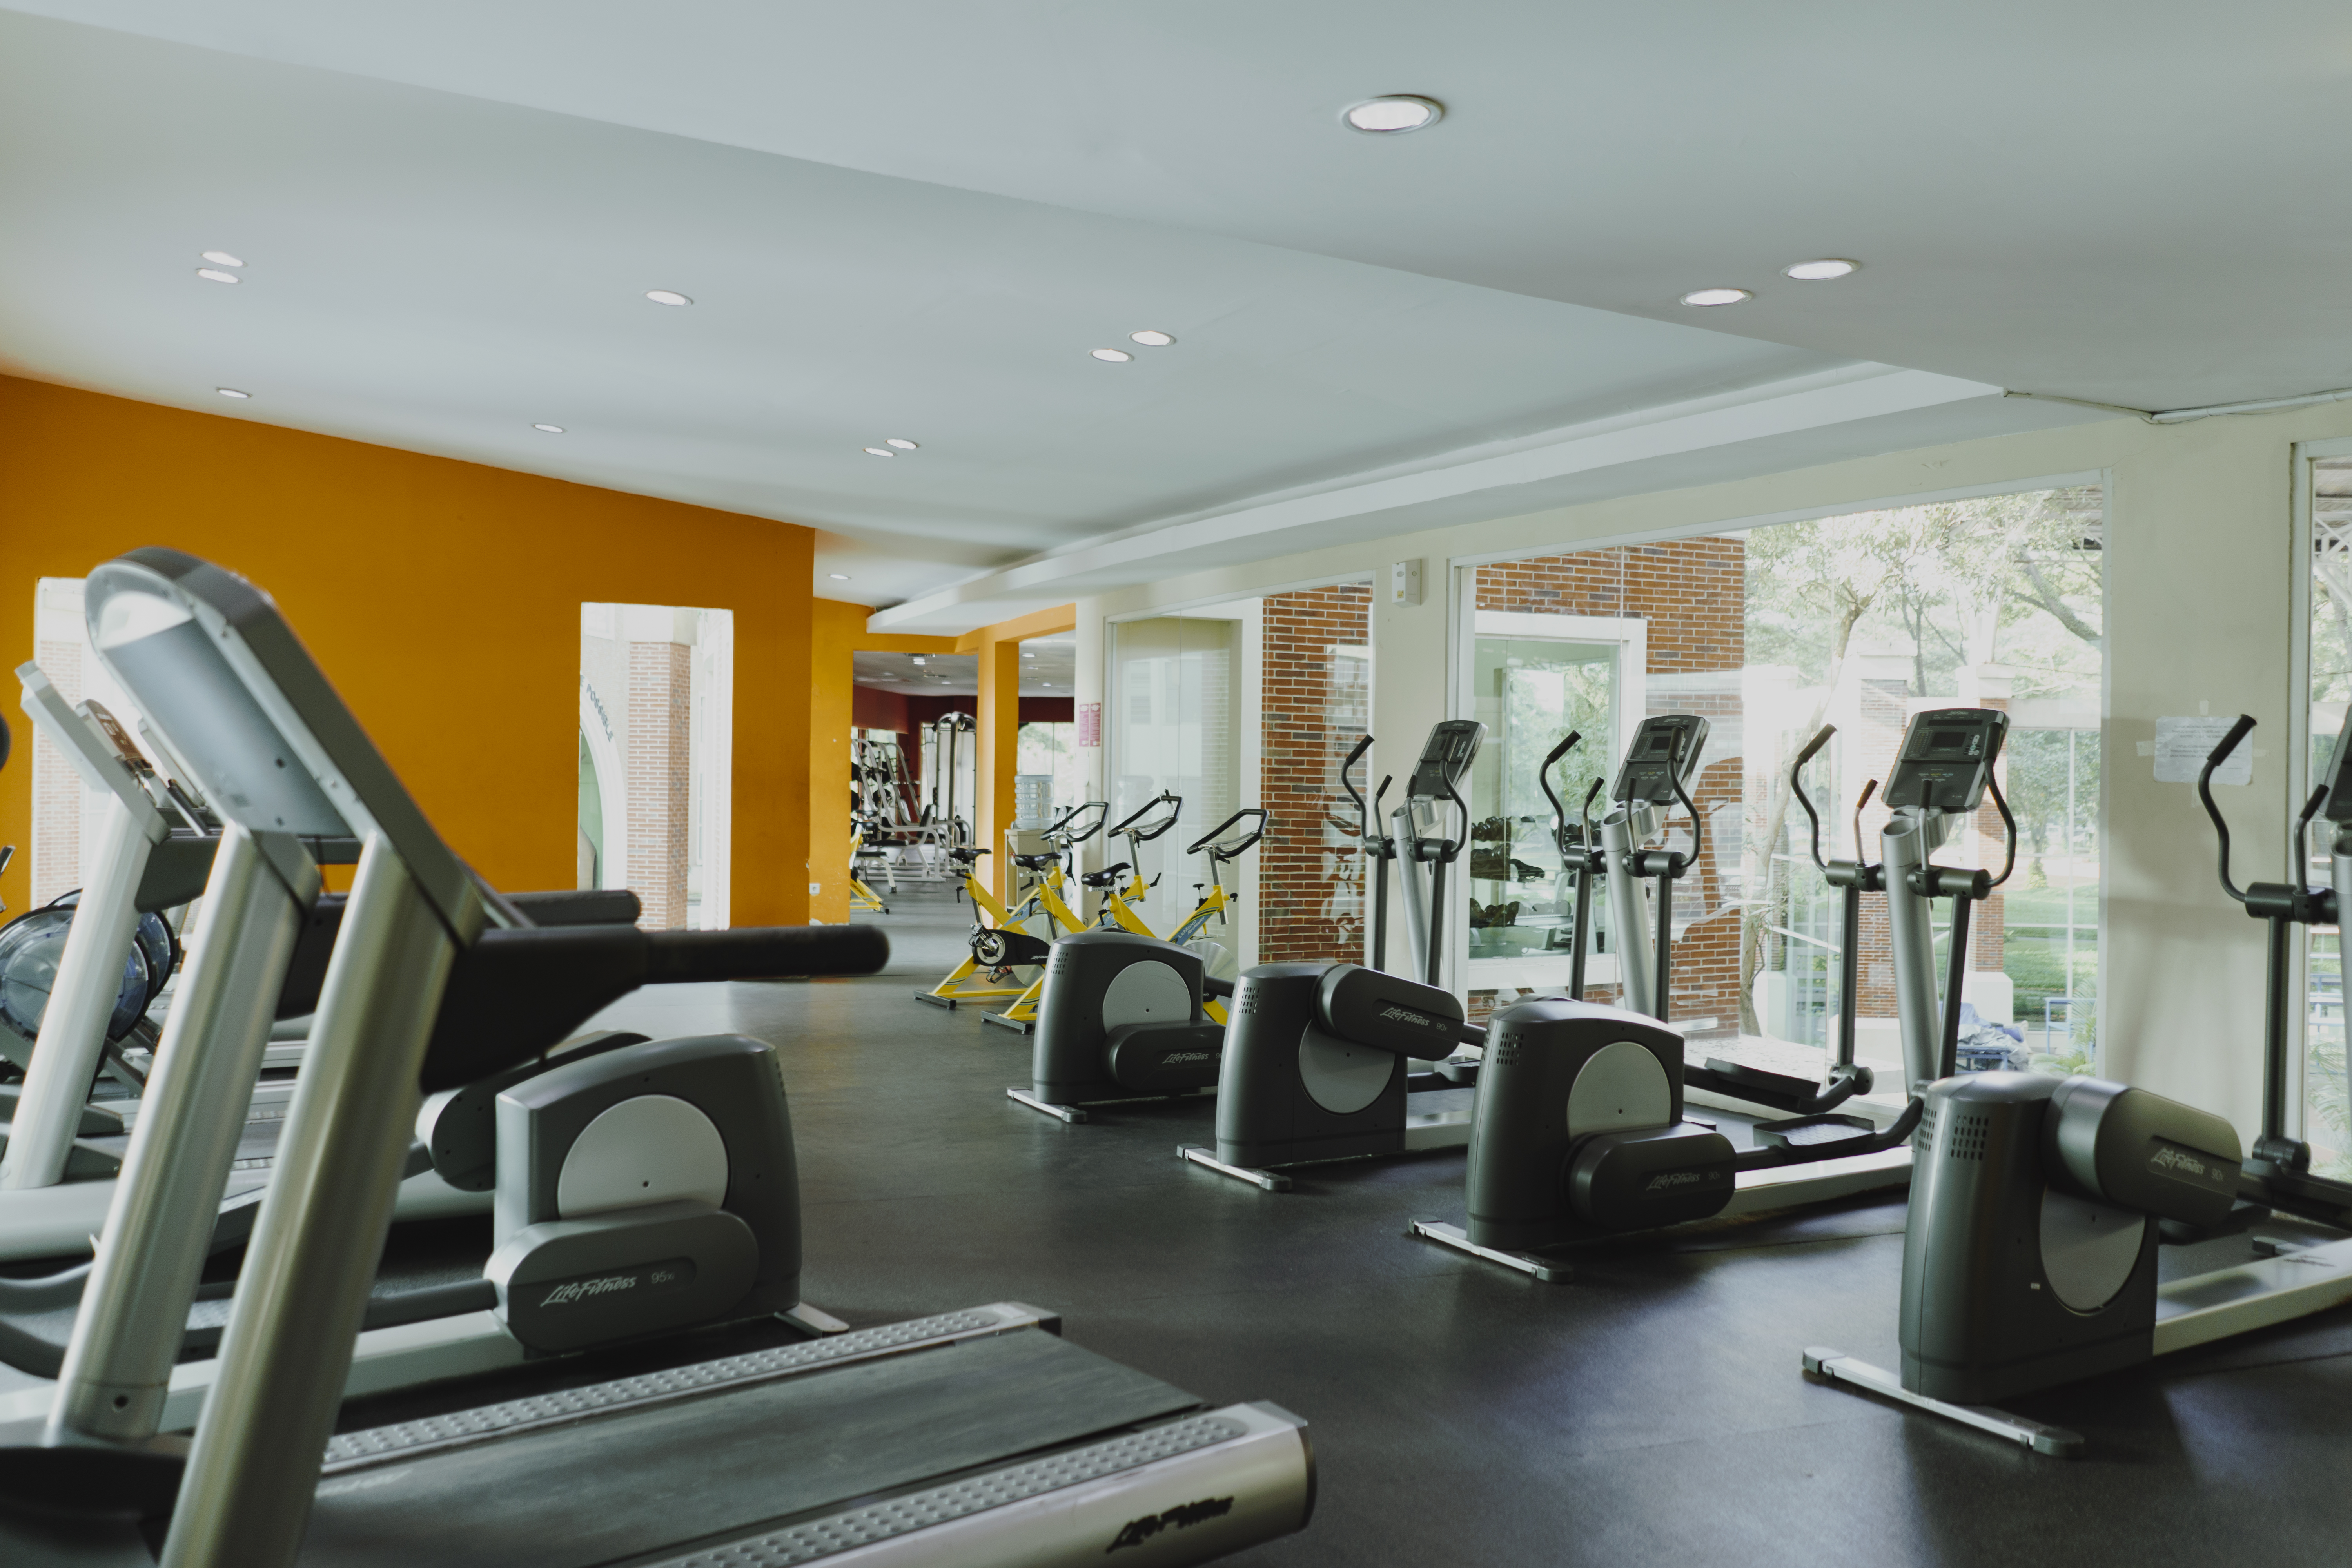 UPH College Fitness Centre